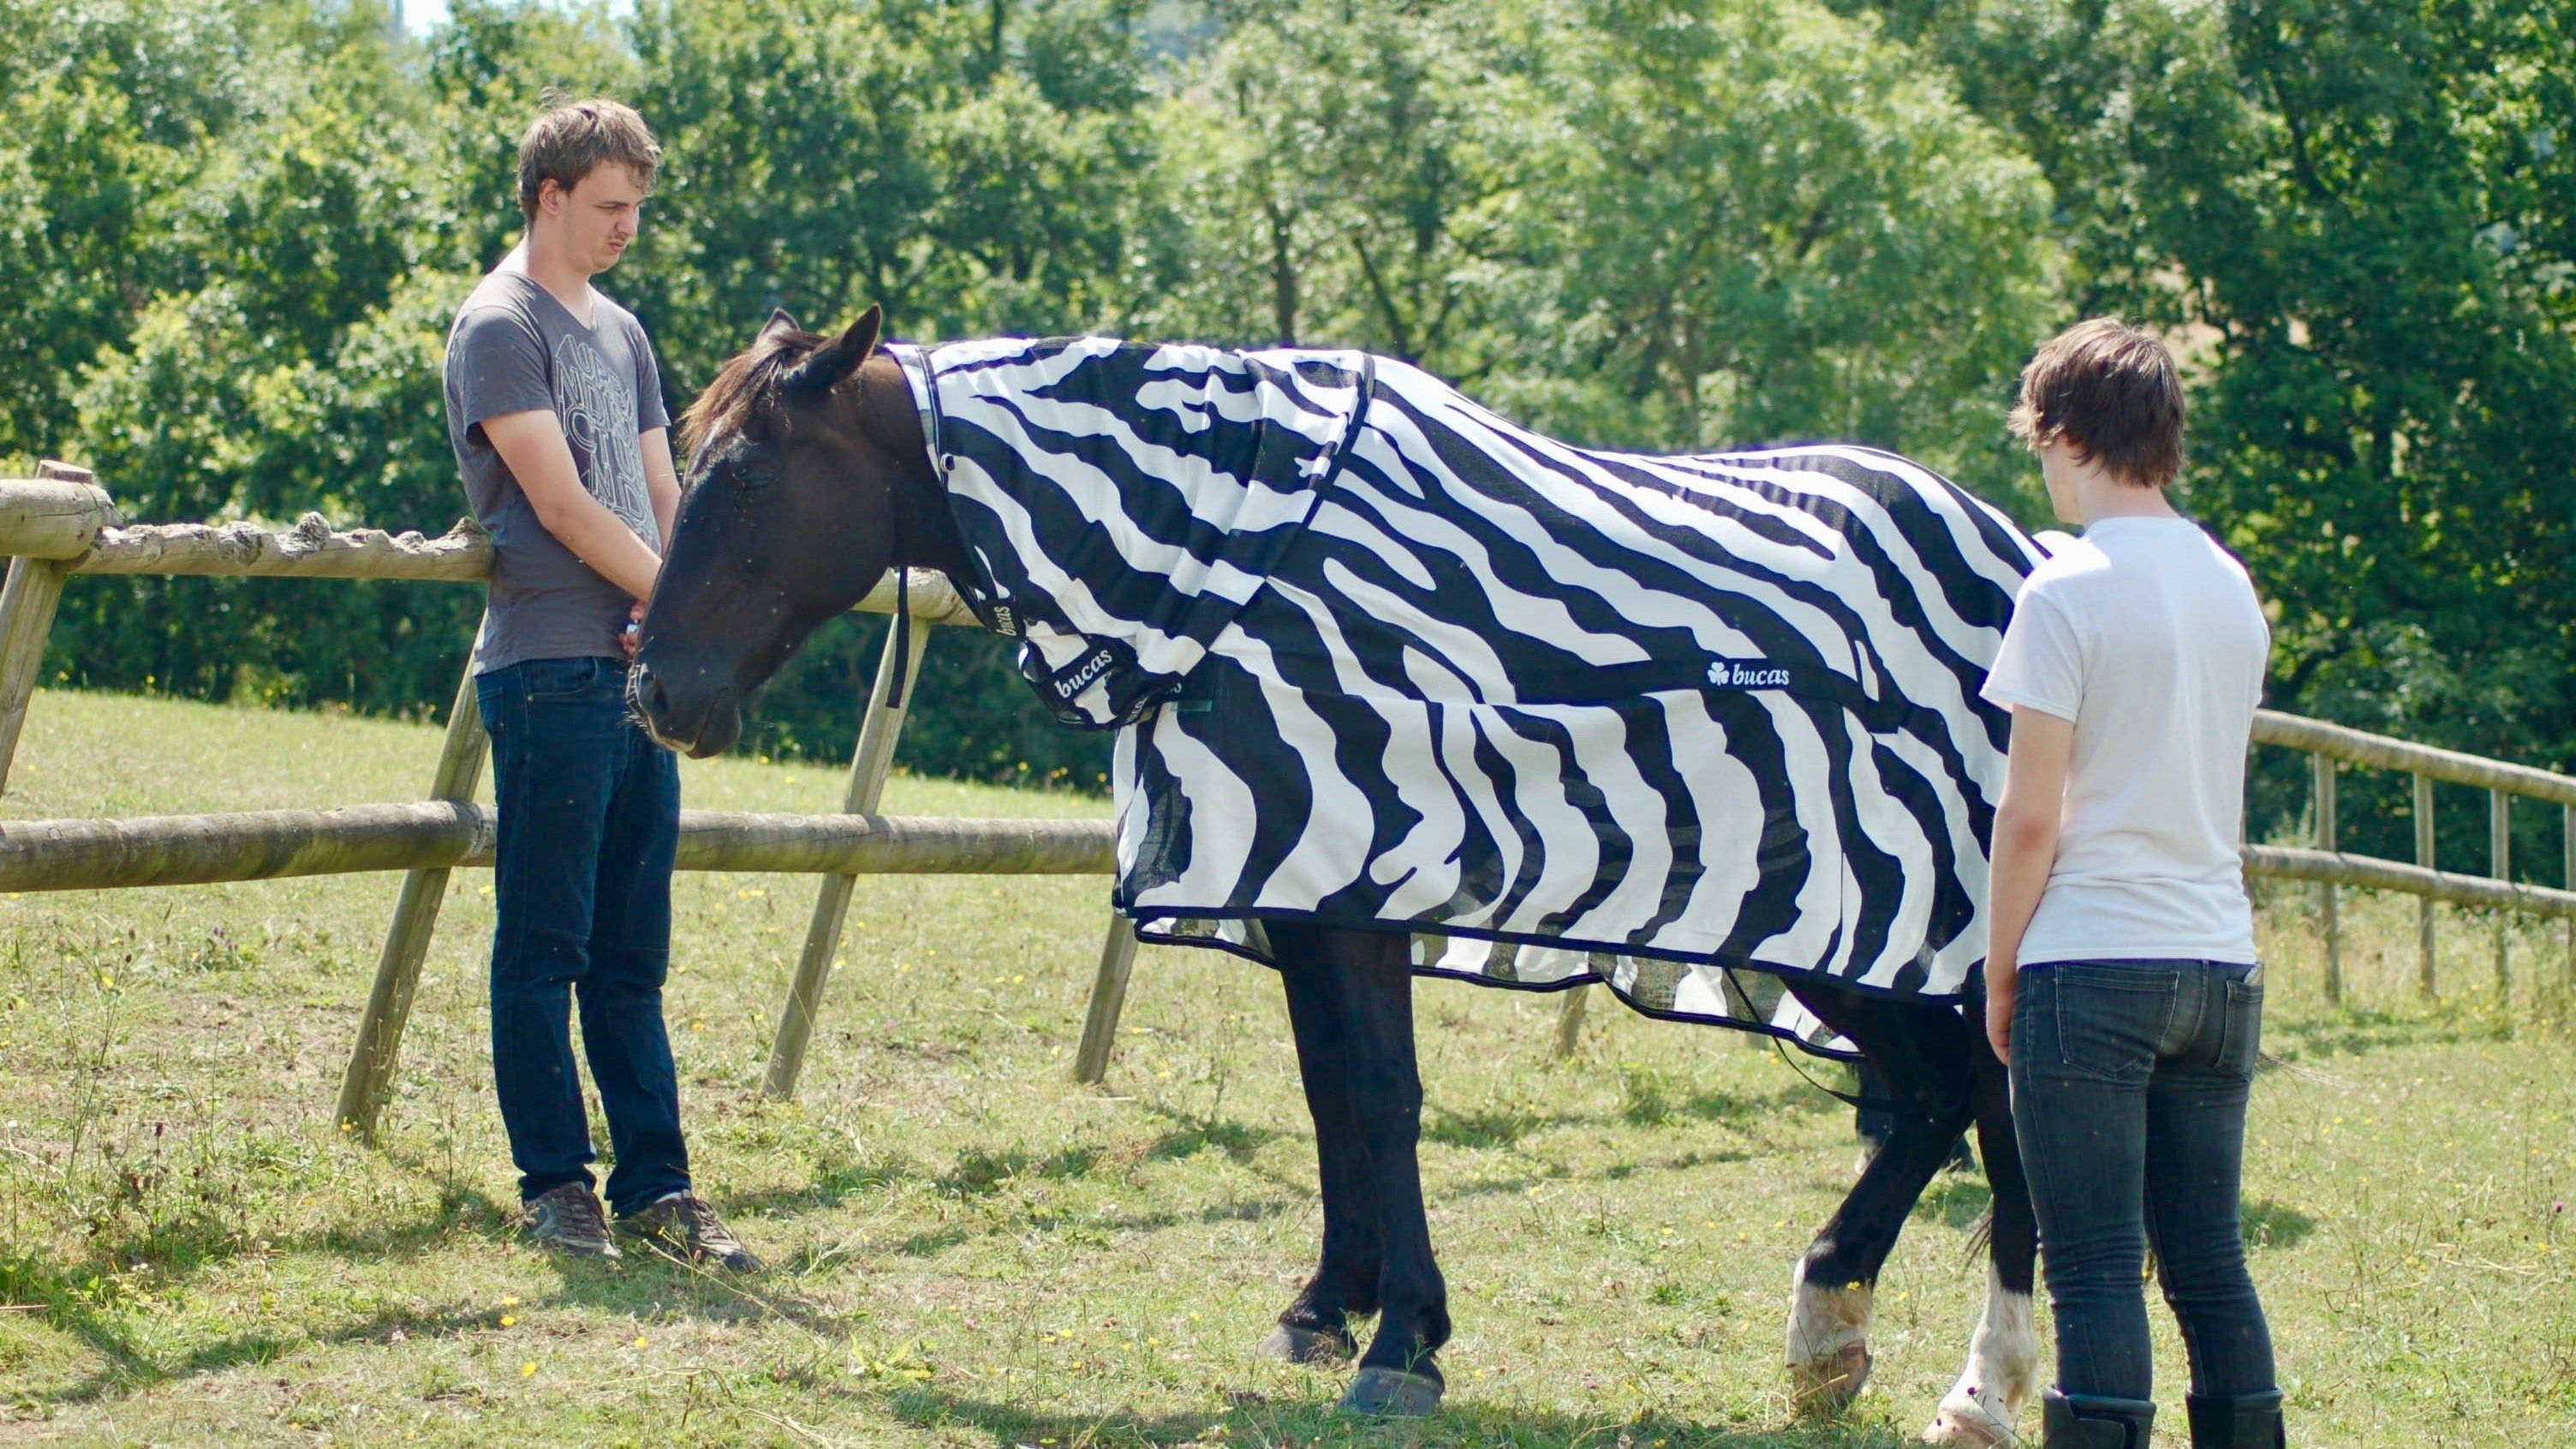 Mystery of zebra stripes solved after freaky horse costume experiment